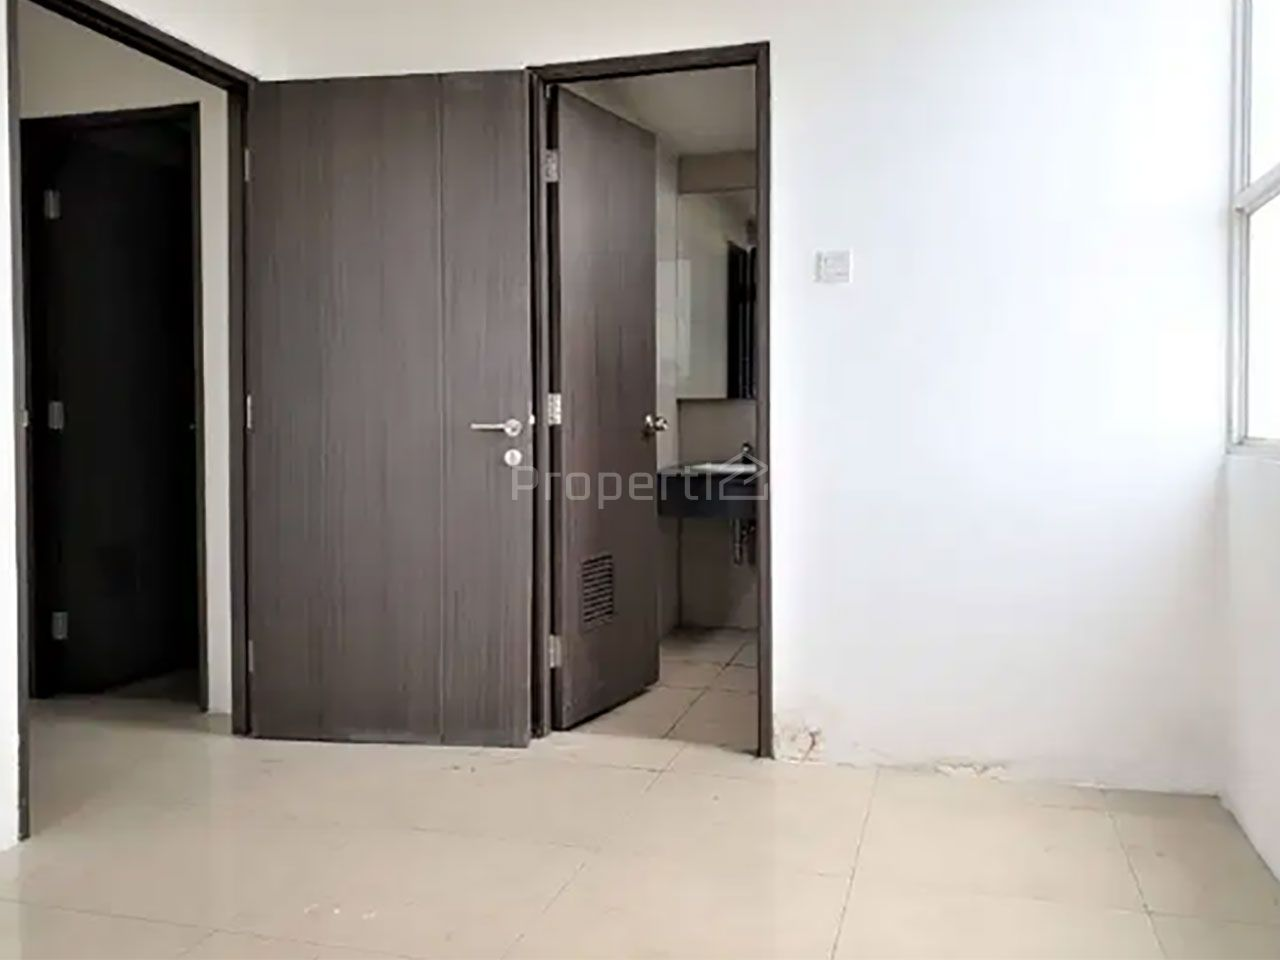 3BR Apartment Unit at A Tower Pasar Baru Mansion, 8th Floor, DKI Jakarta